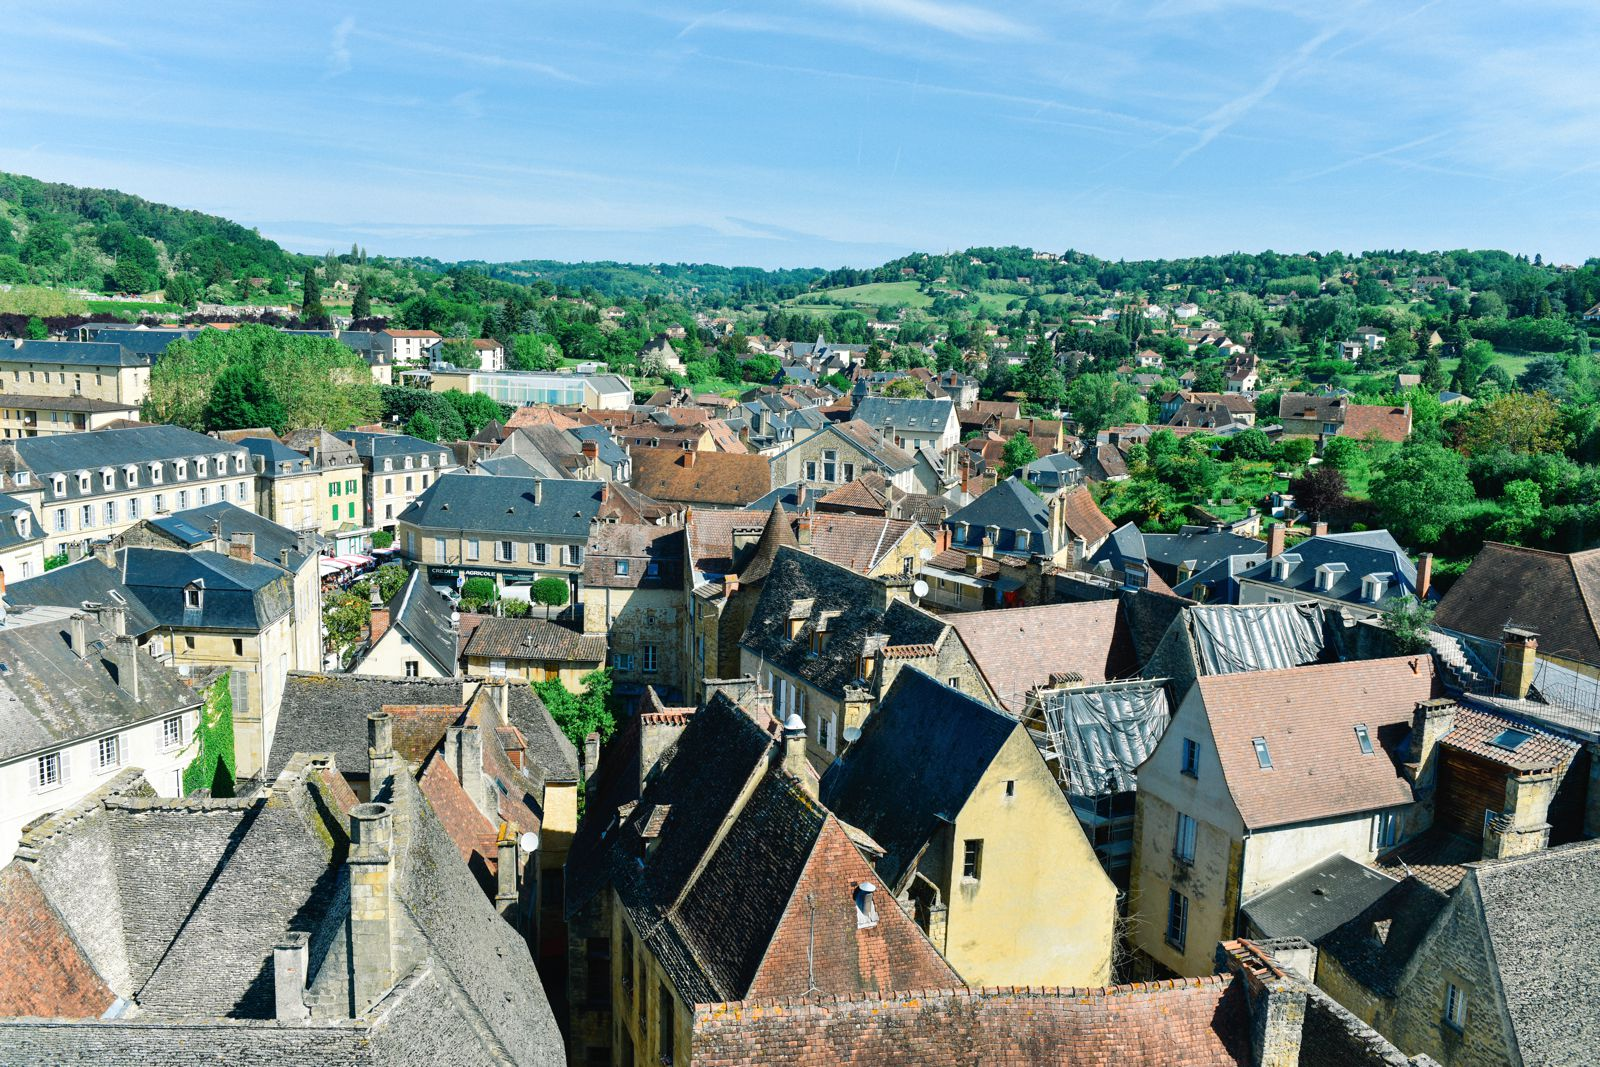 Mornings In The French City Of Sarlat And Afternoons In The Village Of Beaumont-du-Périgord... (16)